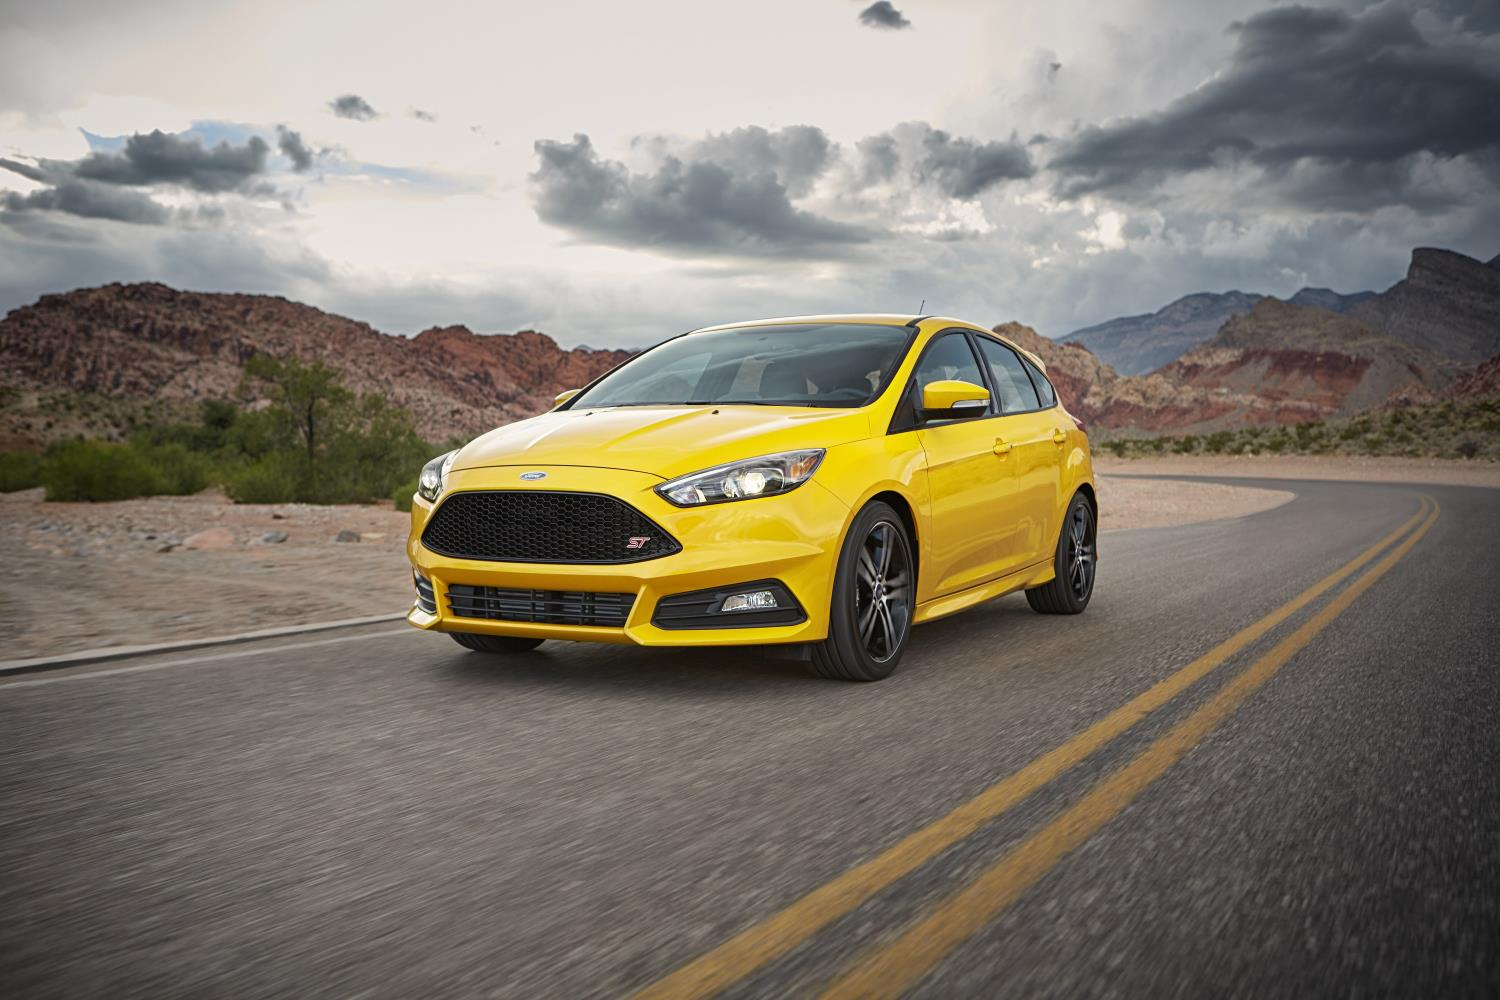 Ford Focus, one of Ford's top selling vehicles in the USA in 2017